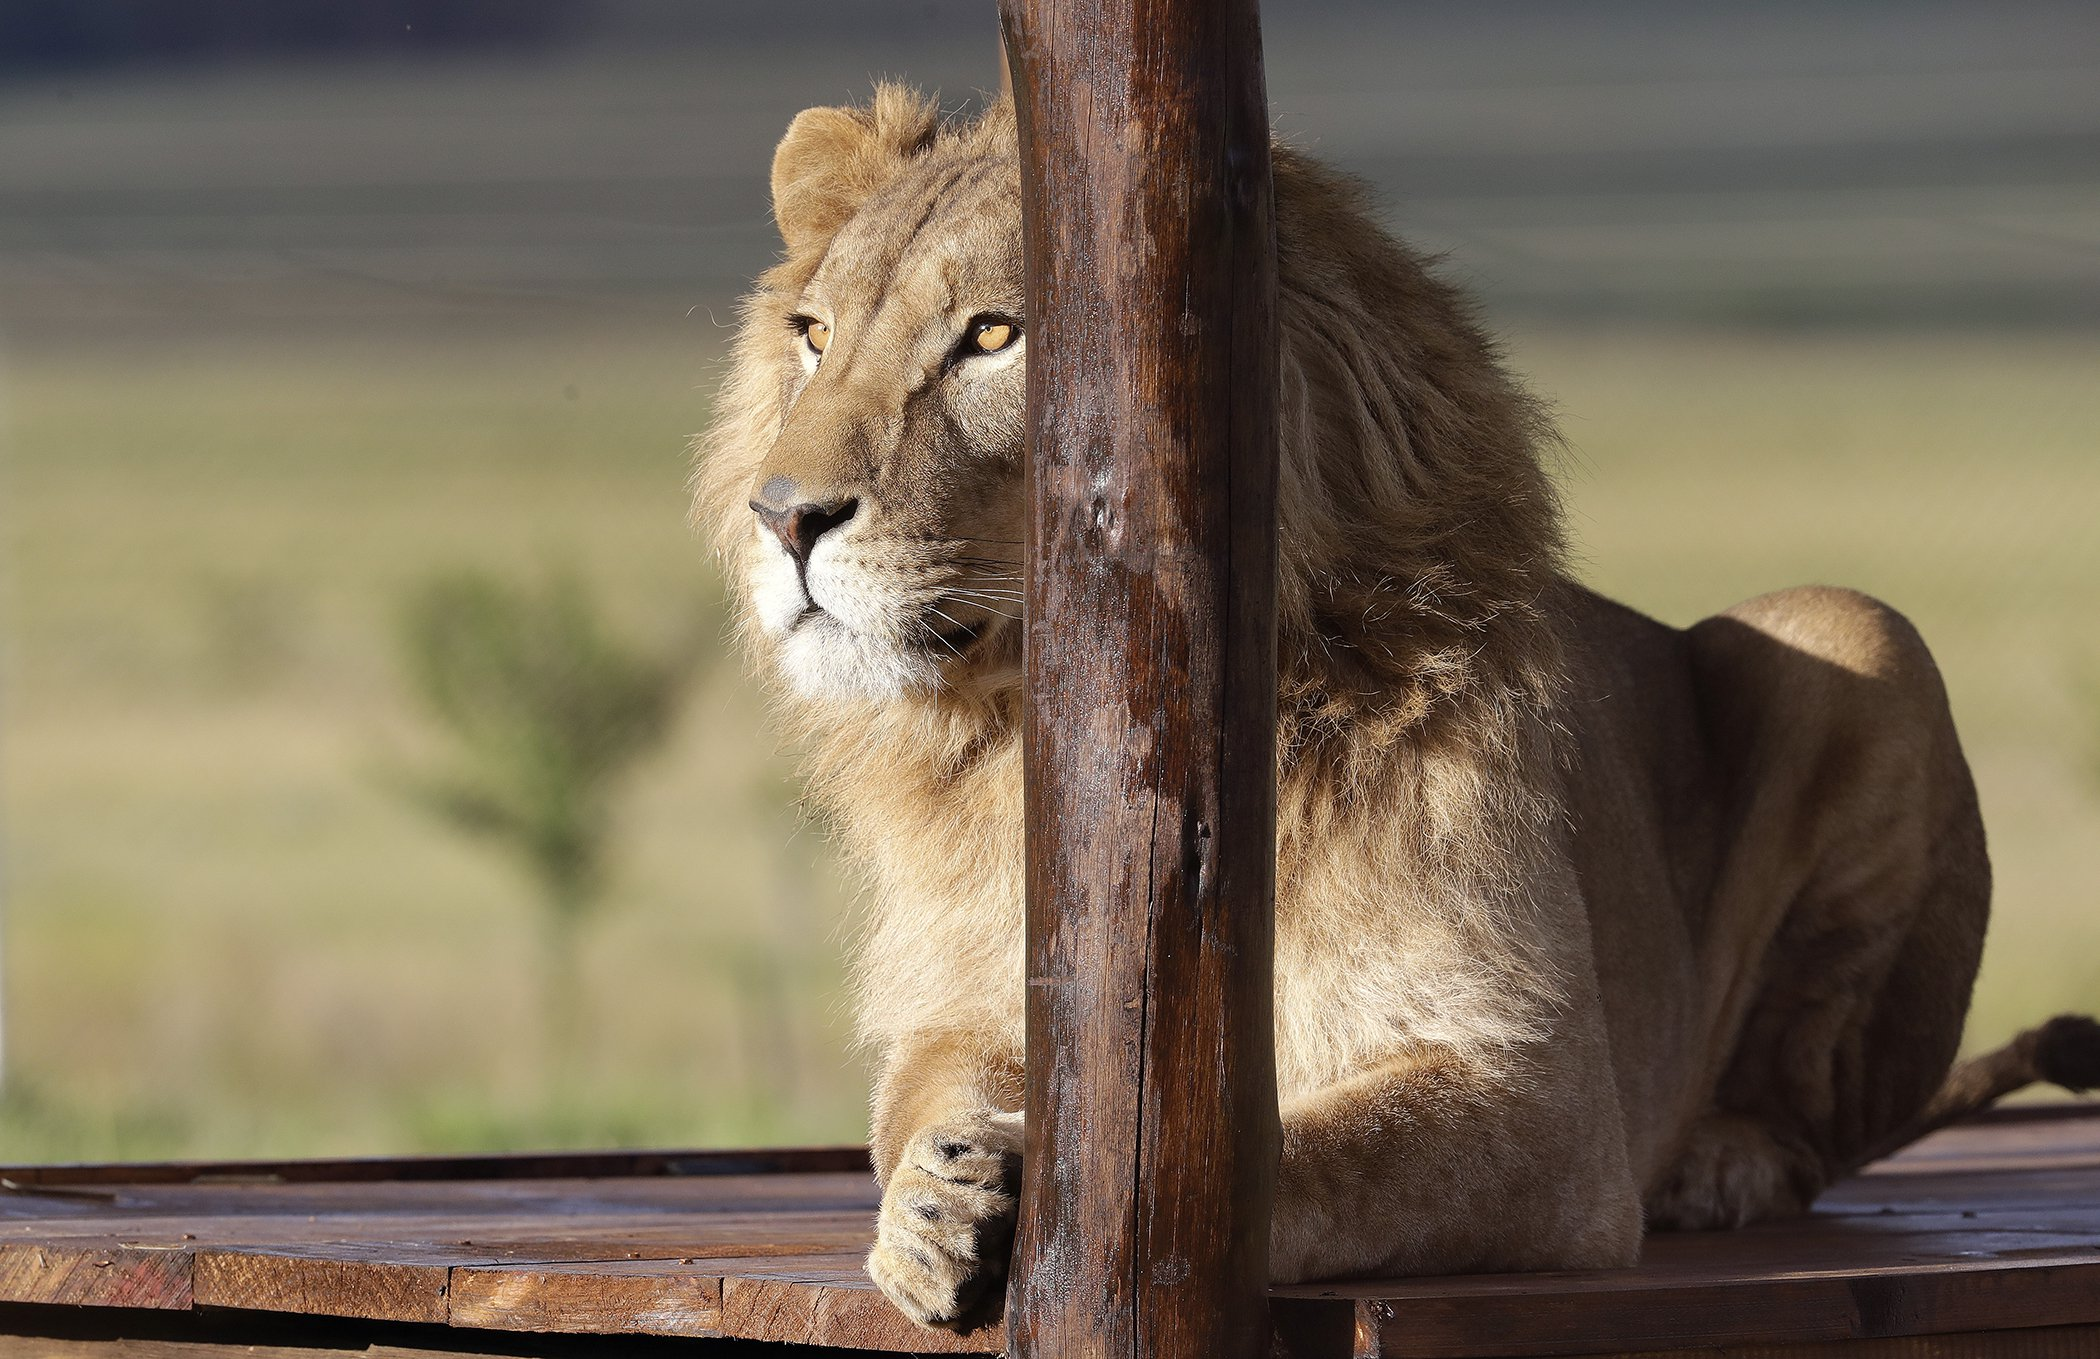 Rescued-Lions-Environmental-Photos-February.jpg